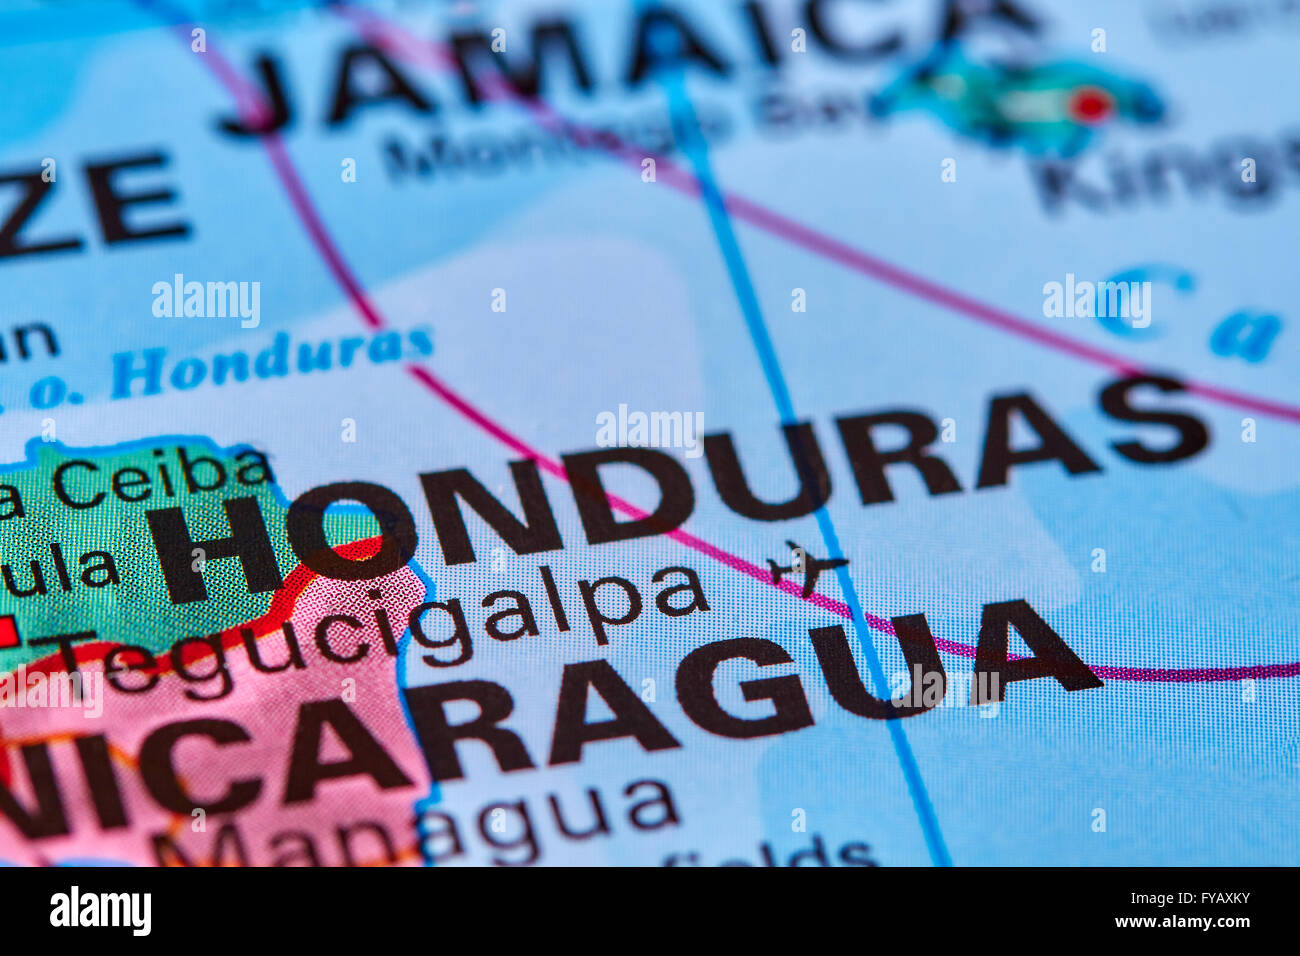 Honduras, Country in Central America on the World Map - Stock Image